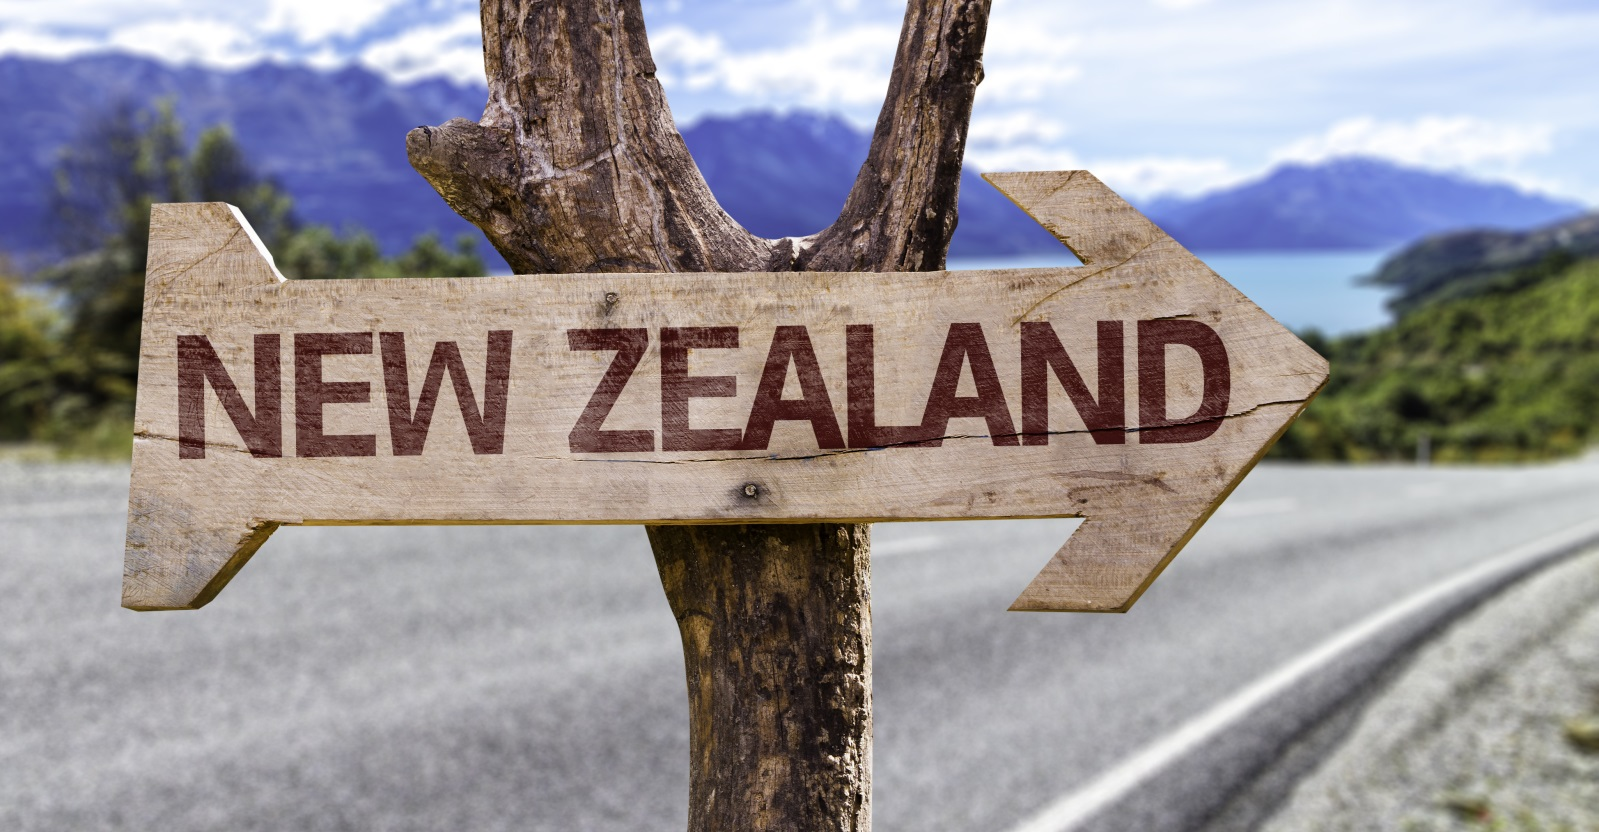 New zealand immigration adviser look out for immigration scams new zealand nz immigration lawyer solutioingenieria Image collections